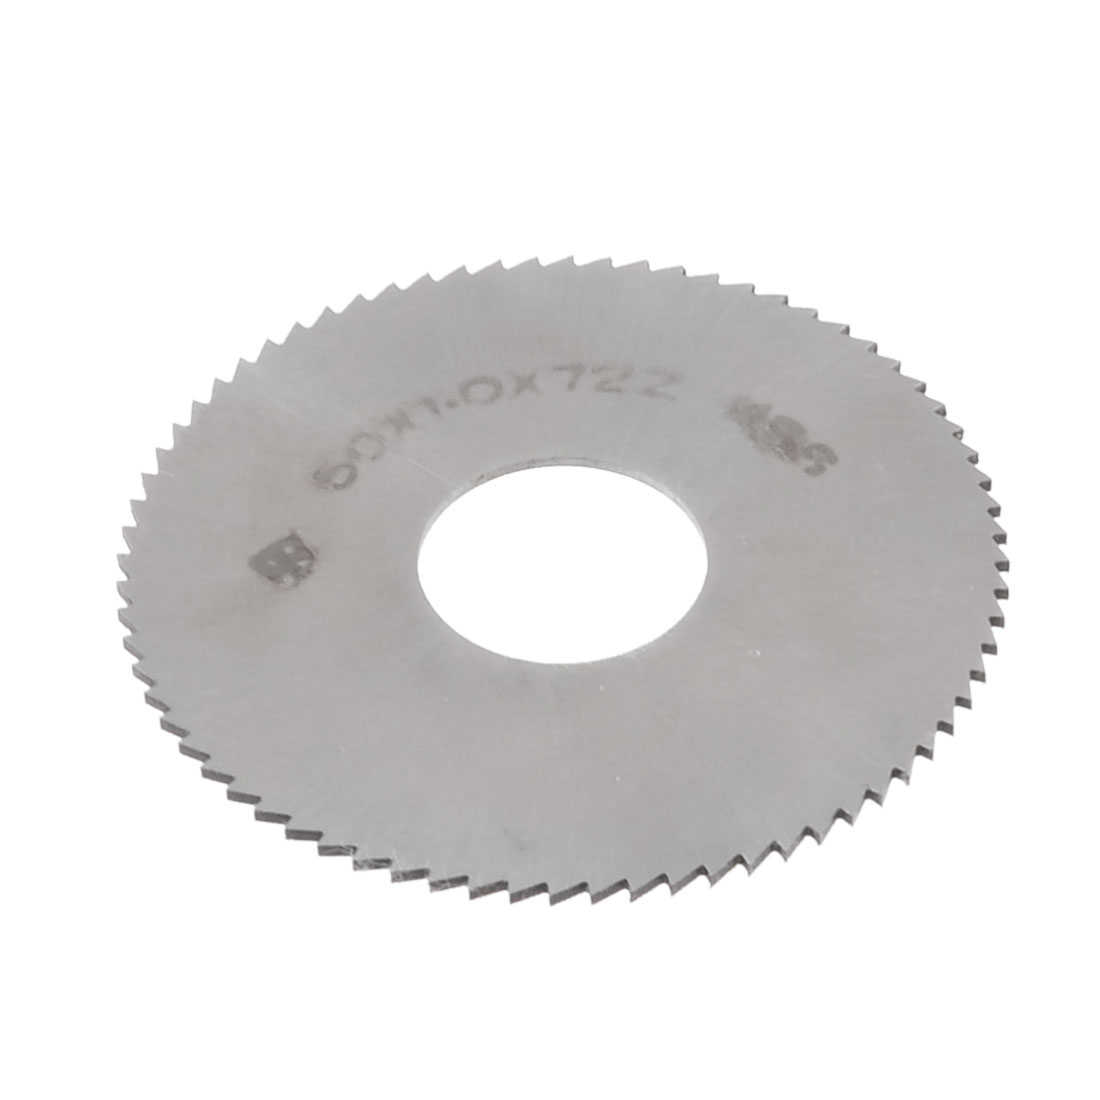 16mm Arbor Hole Dia 1mm Thick 72 Teeth HSS Slotting Saw Blade Silver Tone